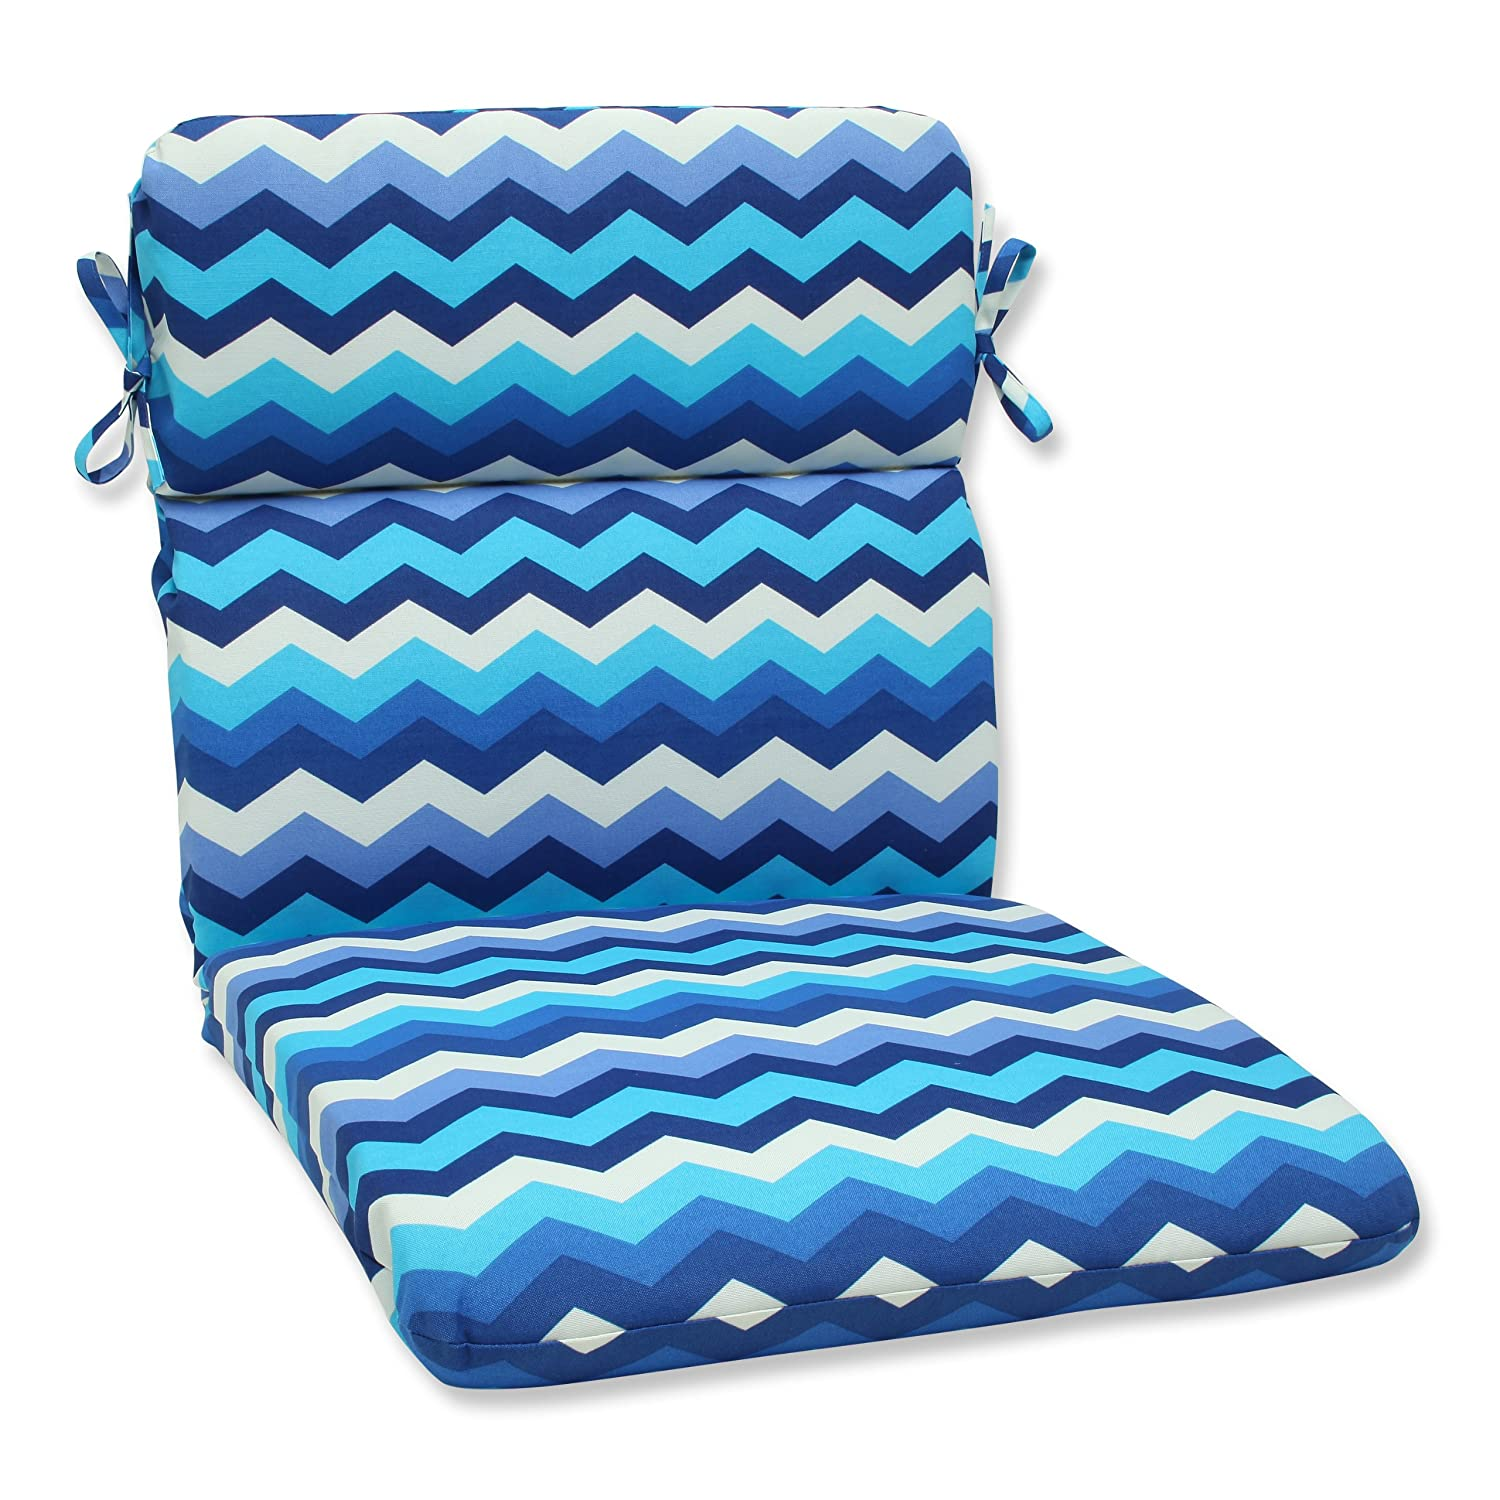 Pillow Perfect Outdoor Panama Wave Rounded Corners Chair Cushion, Azure